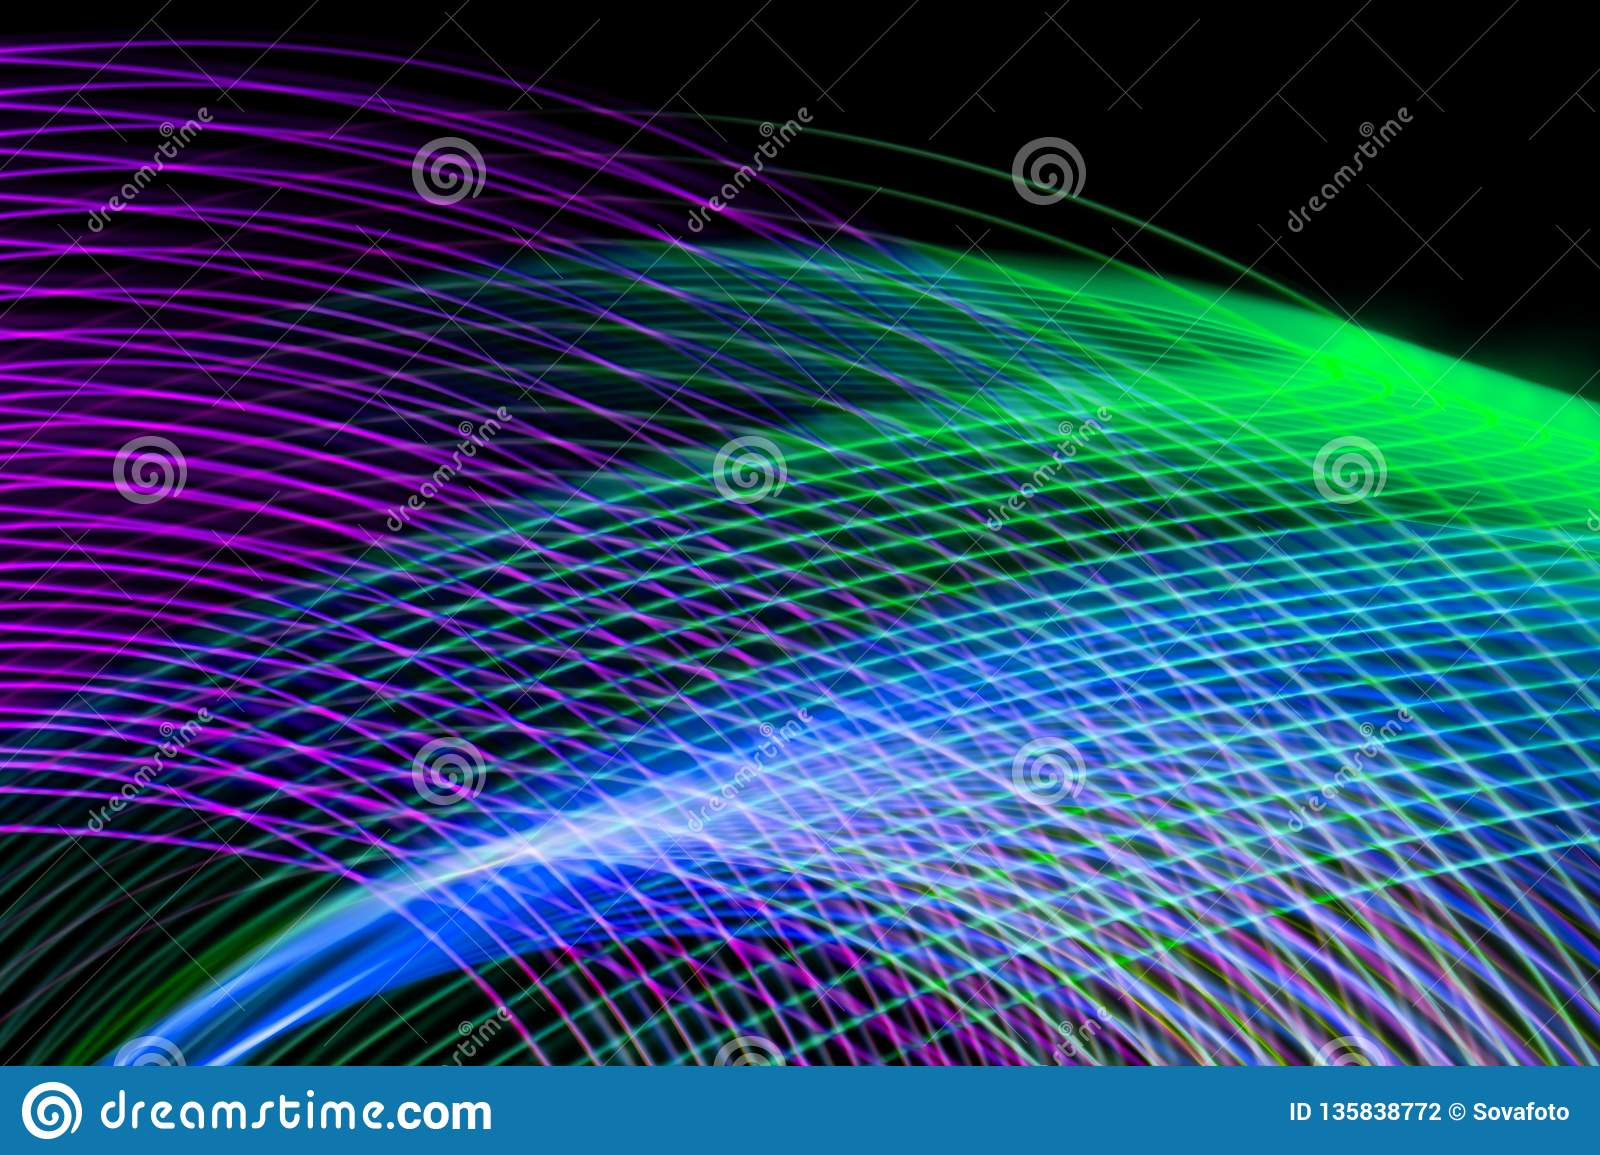 Colorful Christmas Lights Aesthetic.The Concept Of Geometric Aesthetics Stock Illustration